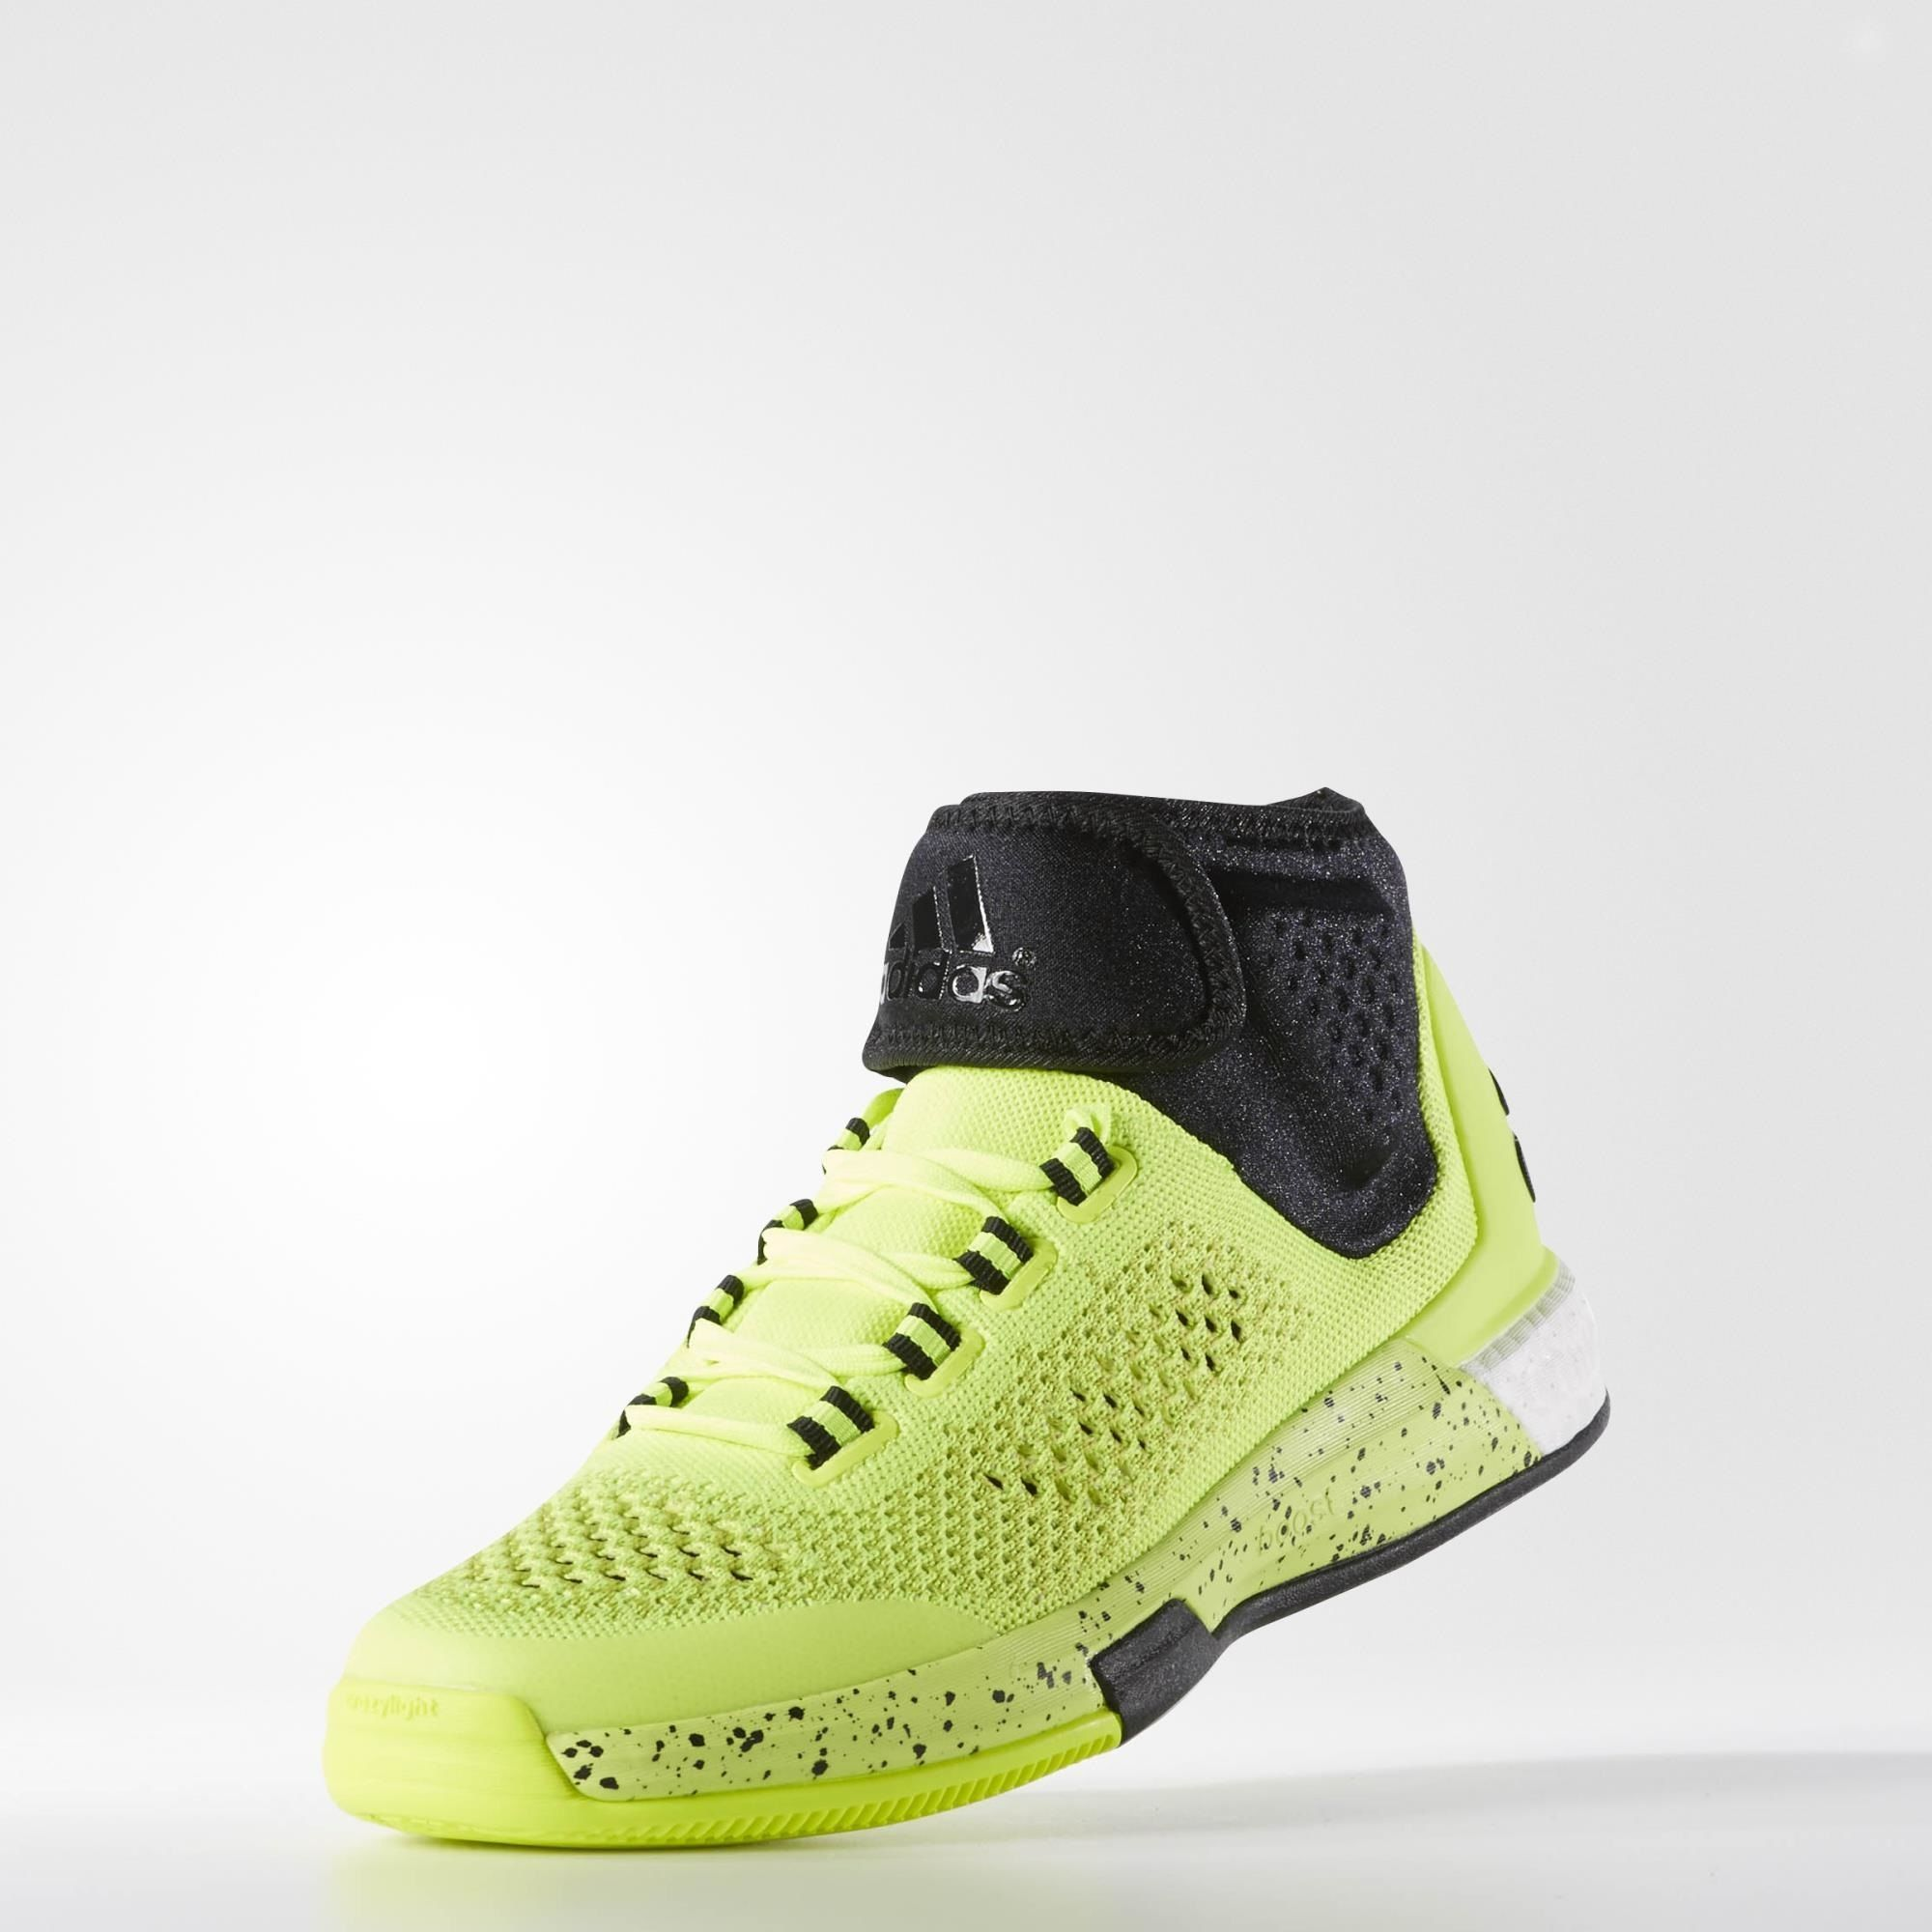 adidas 2015 Crazylight Boost Primeknit Shoes - Yellow | adidas UK